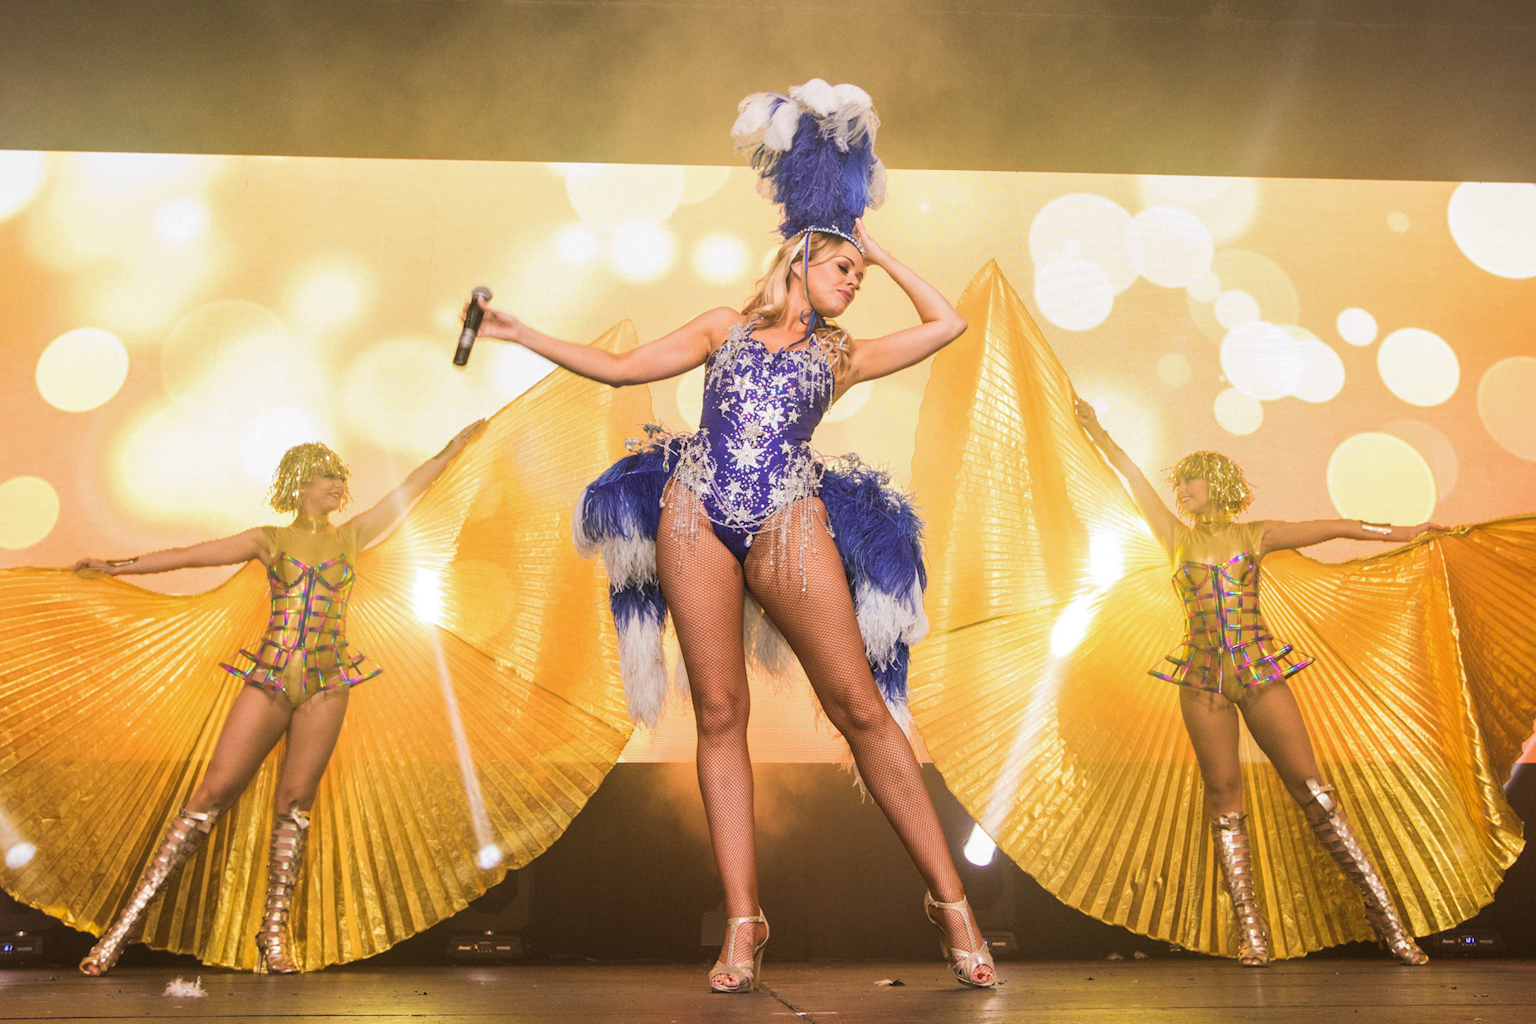 Kylie Minogue Entertainment at Zoe's Angels Charity Event held at the Sofitel Hotel Brisbane